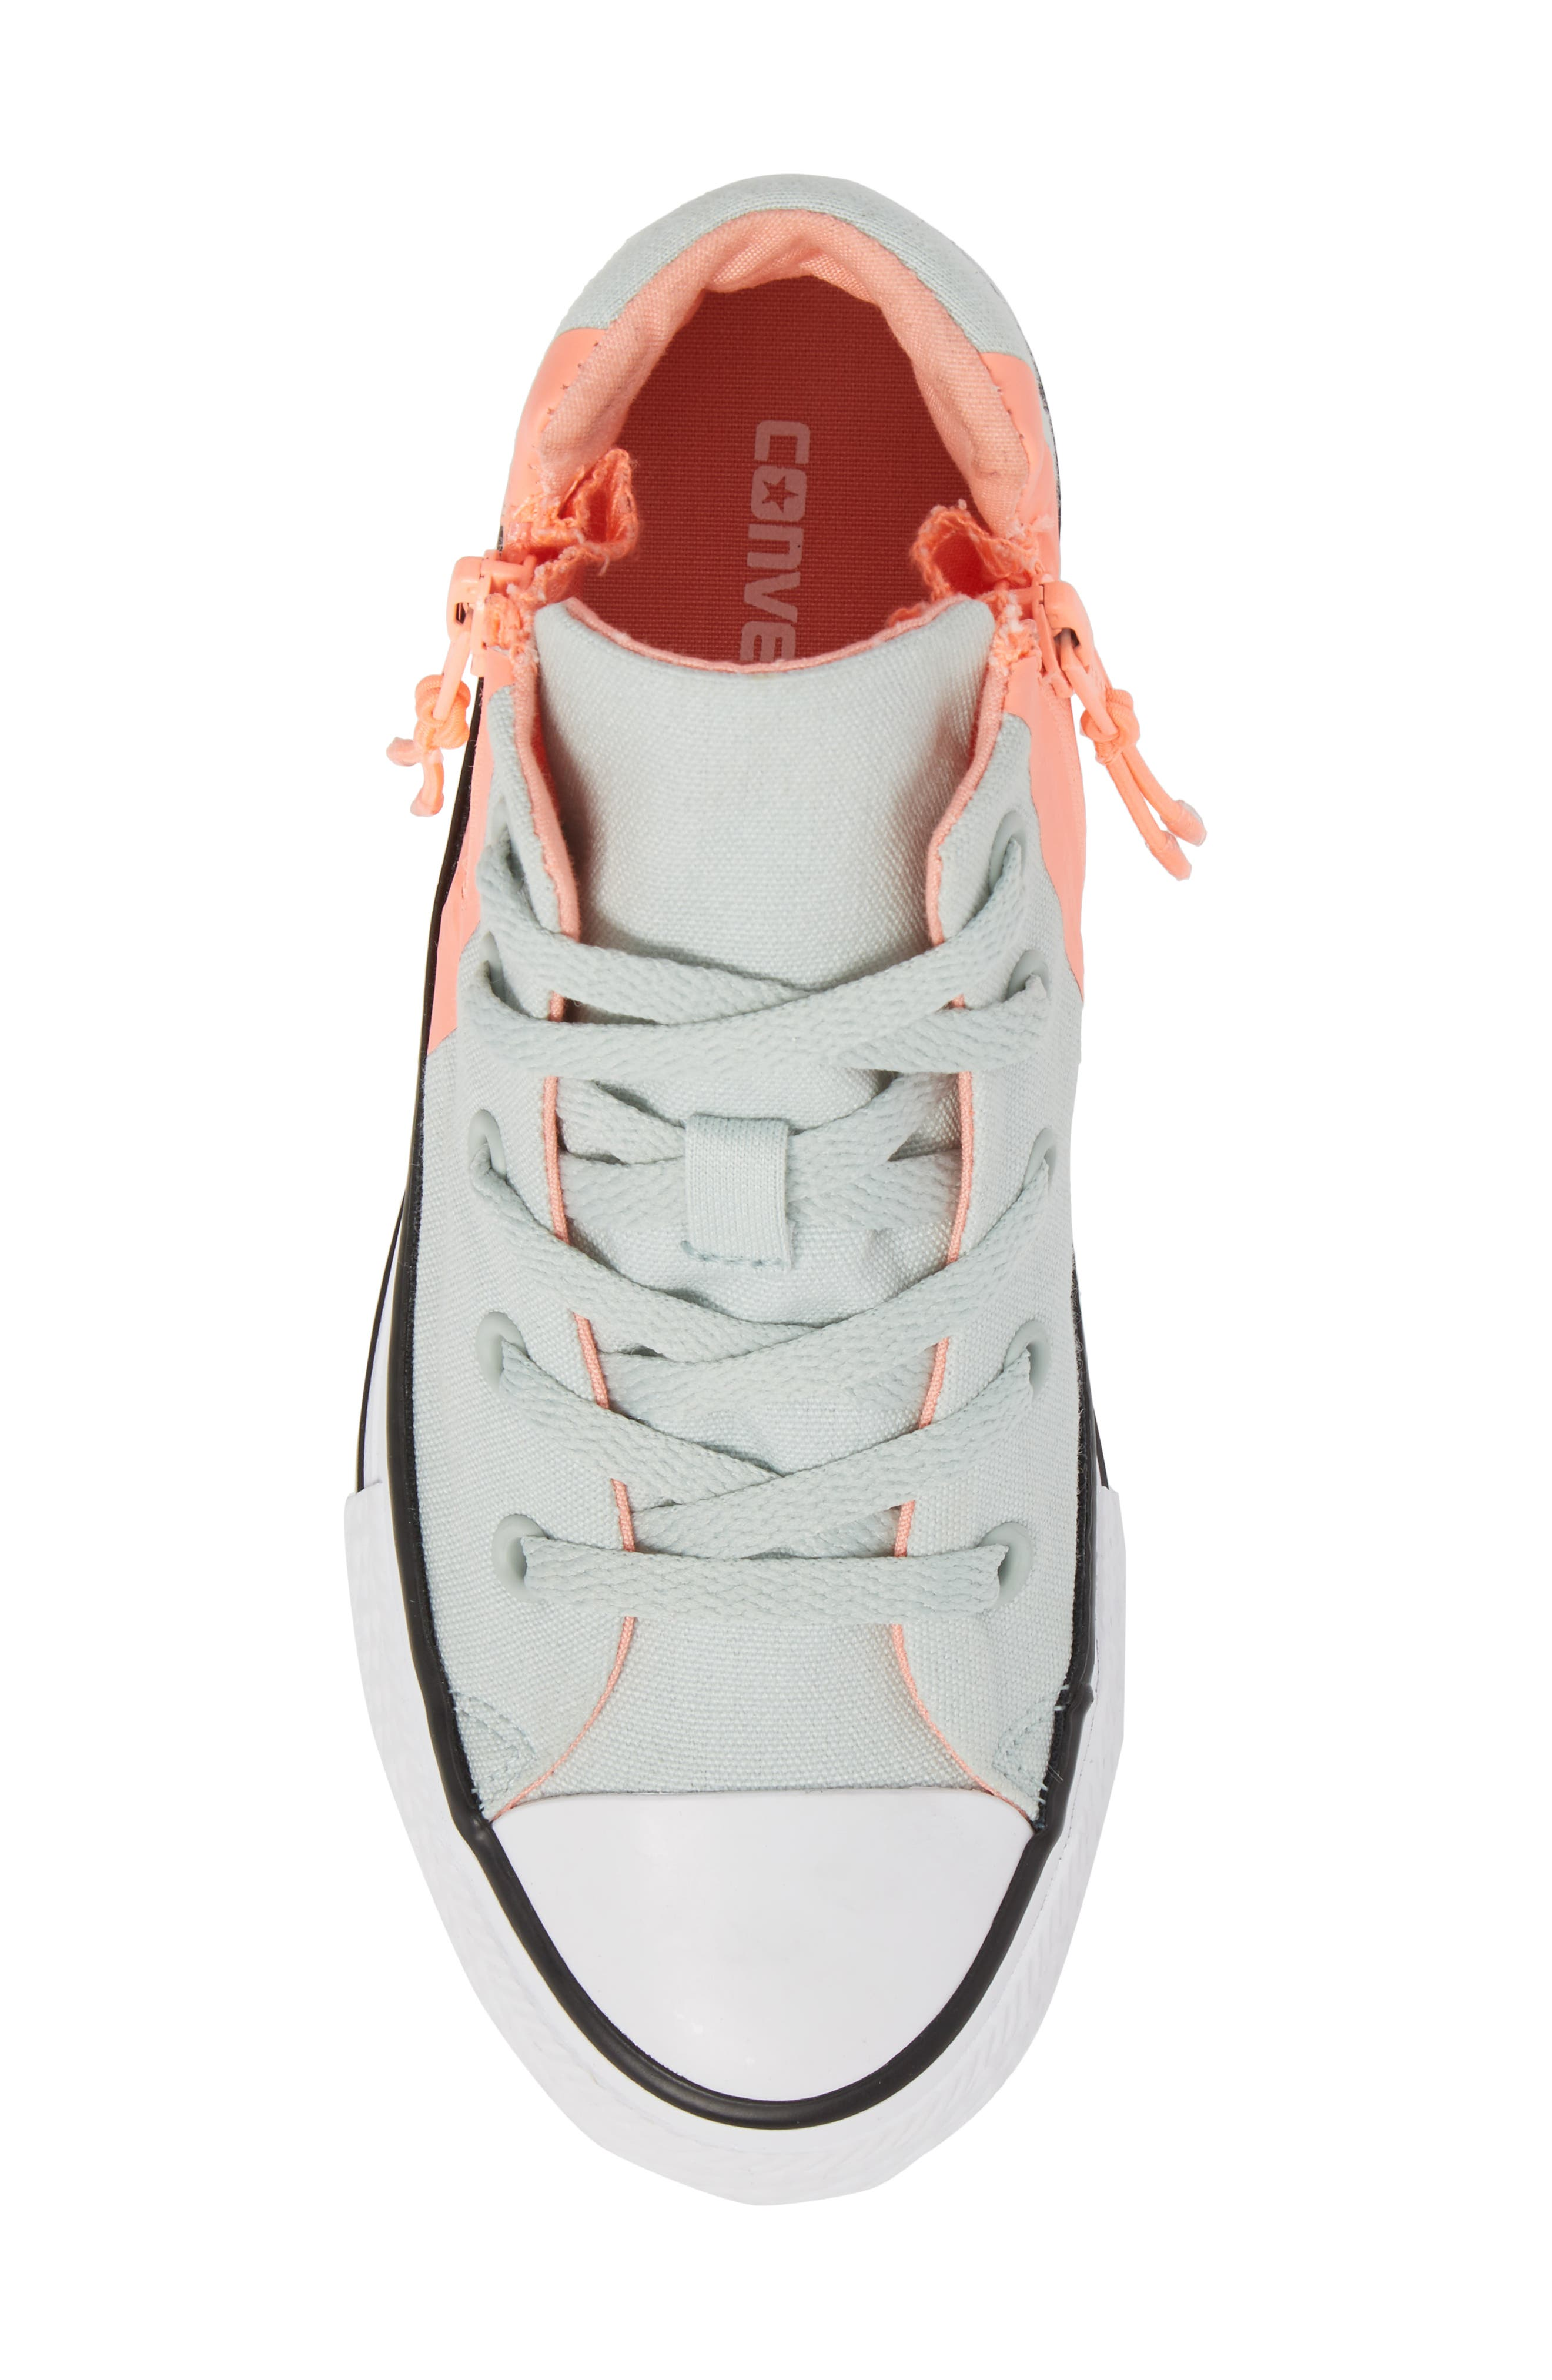 Chuck Taylor<sup>®</sup> All Star<sup>®</sup> Sport Zip High Top Sneaker,                             Alternate thumbnail 5, color,                             Dried Bamboo